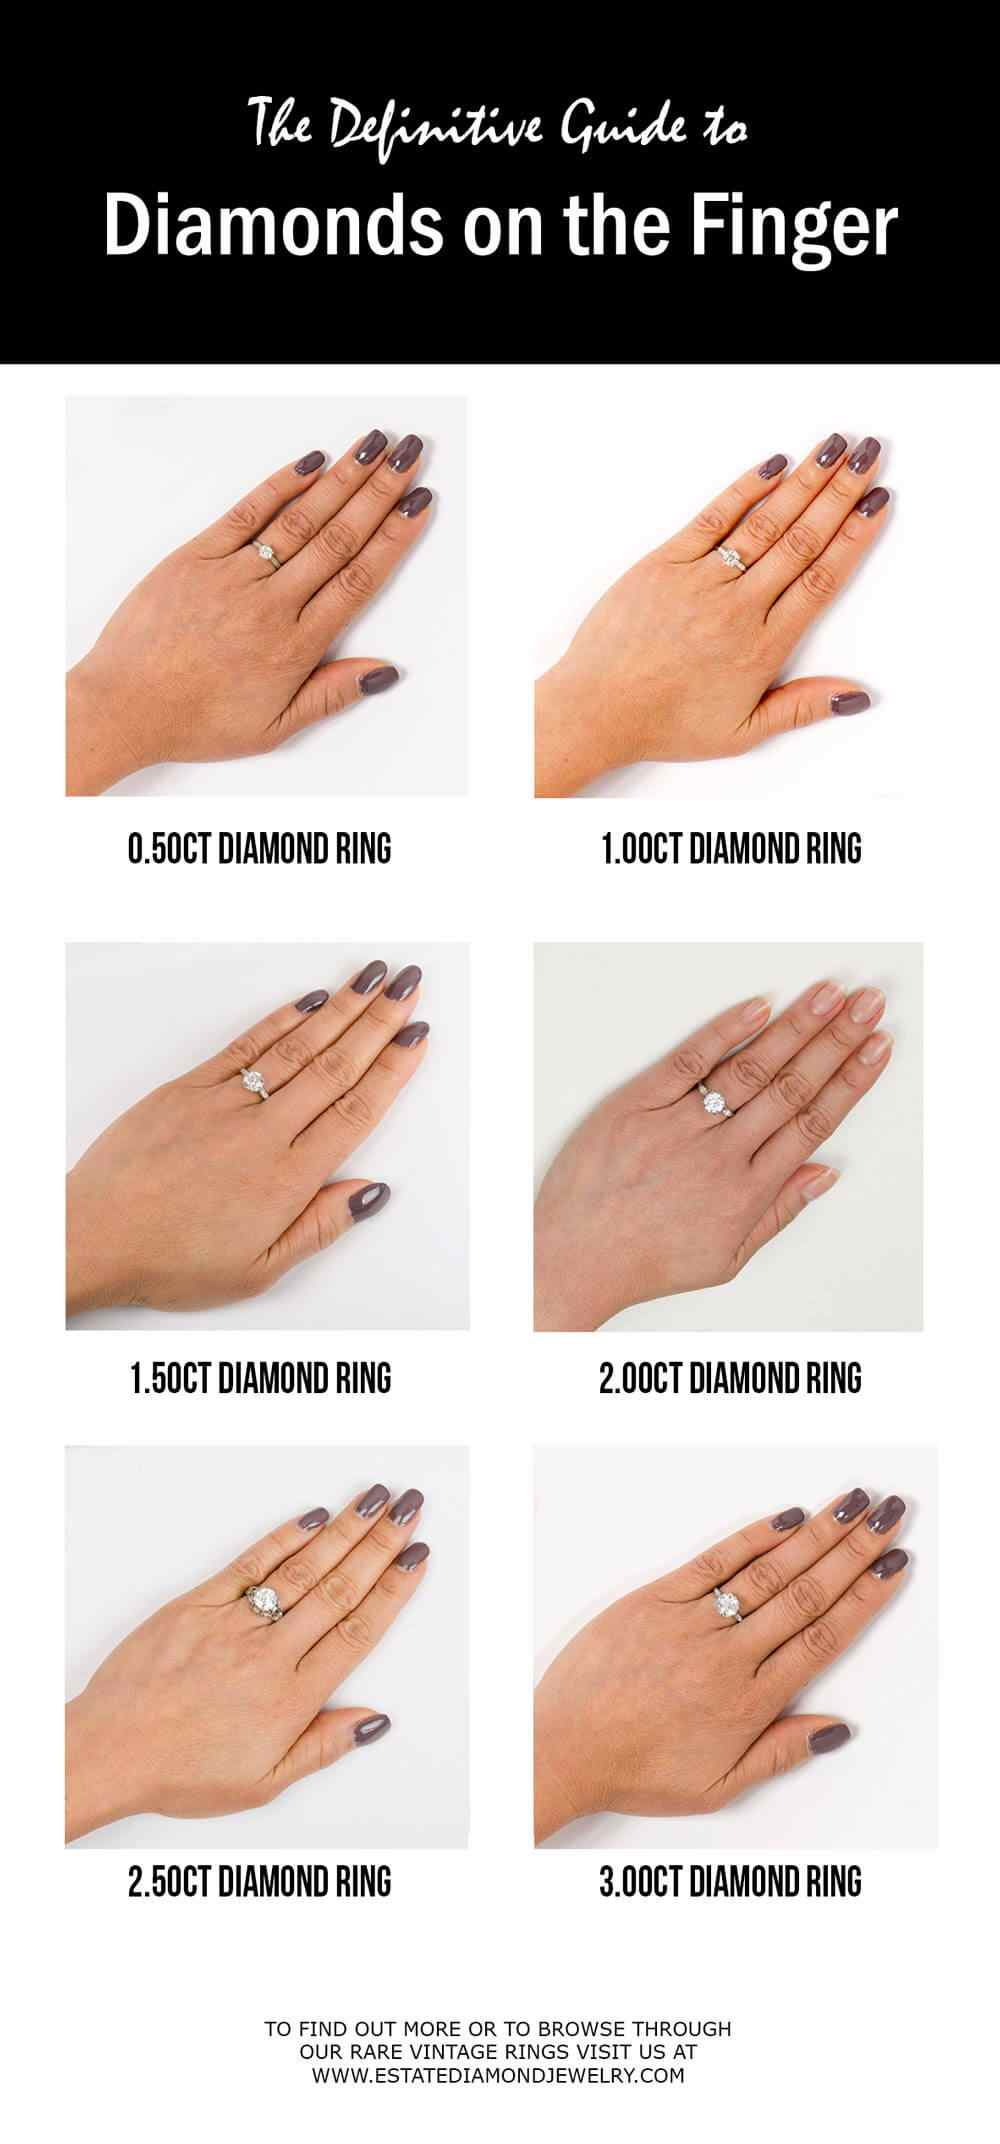 Definitive Guide to Diamonds on the Finger